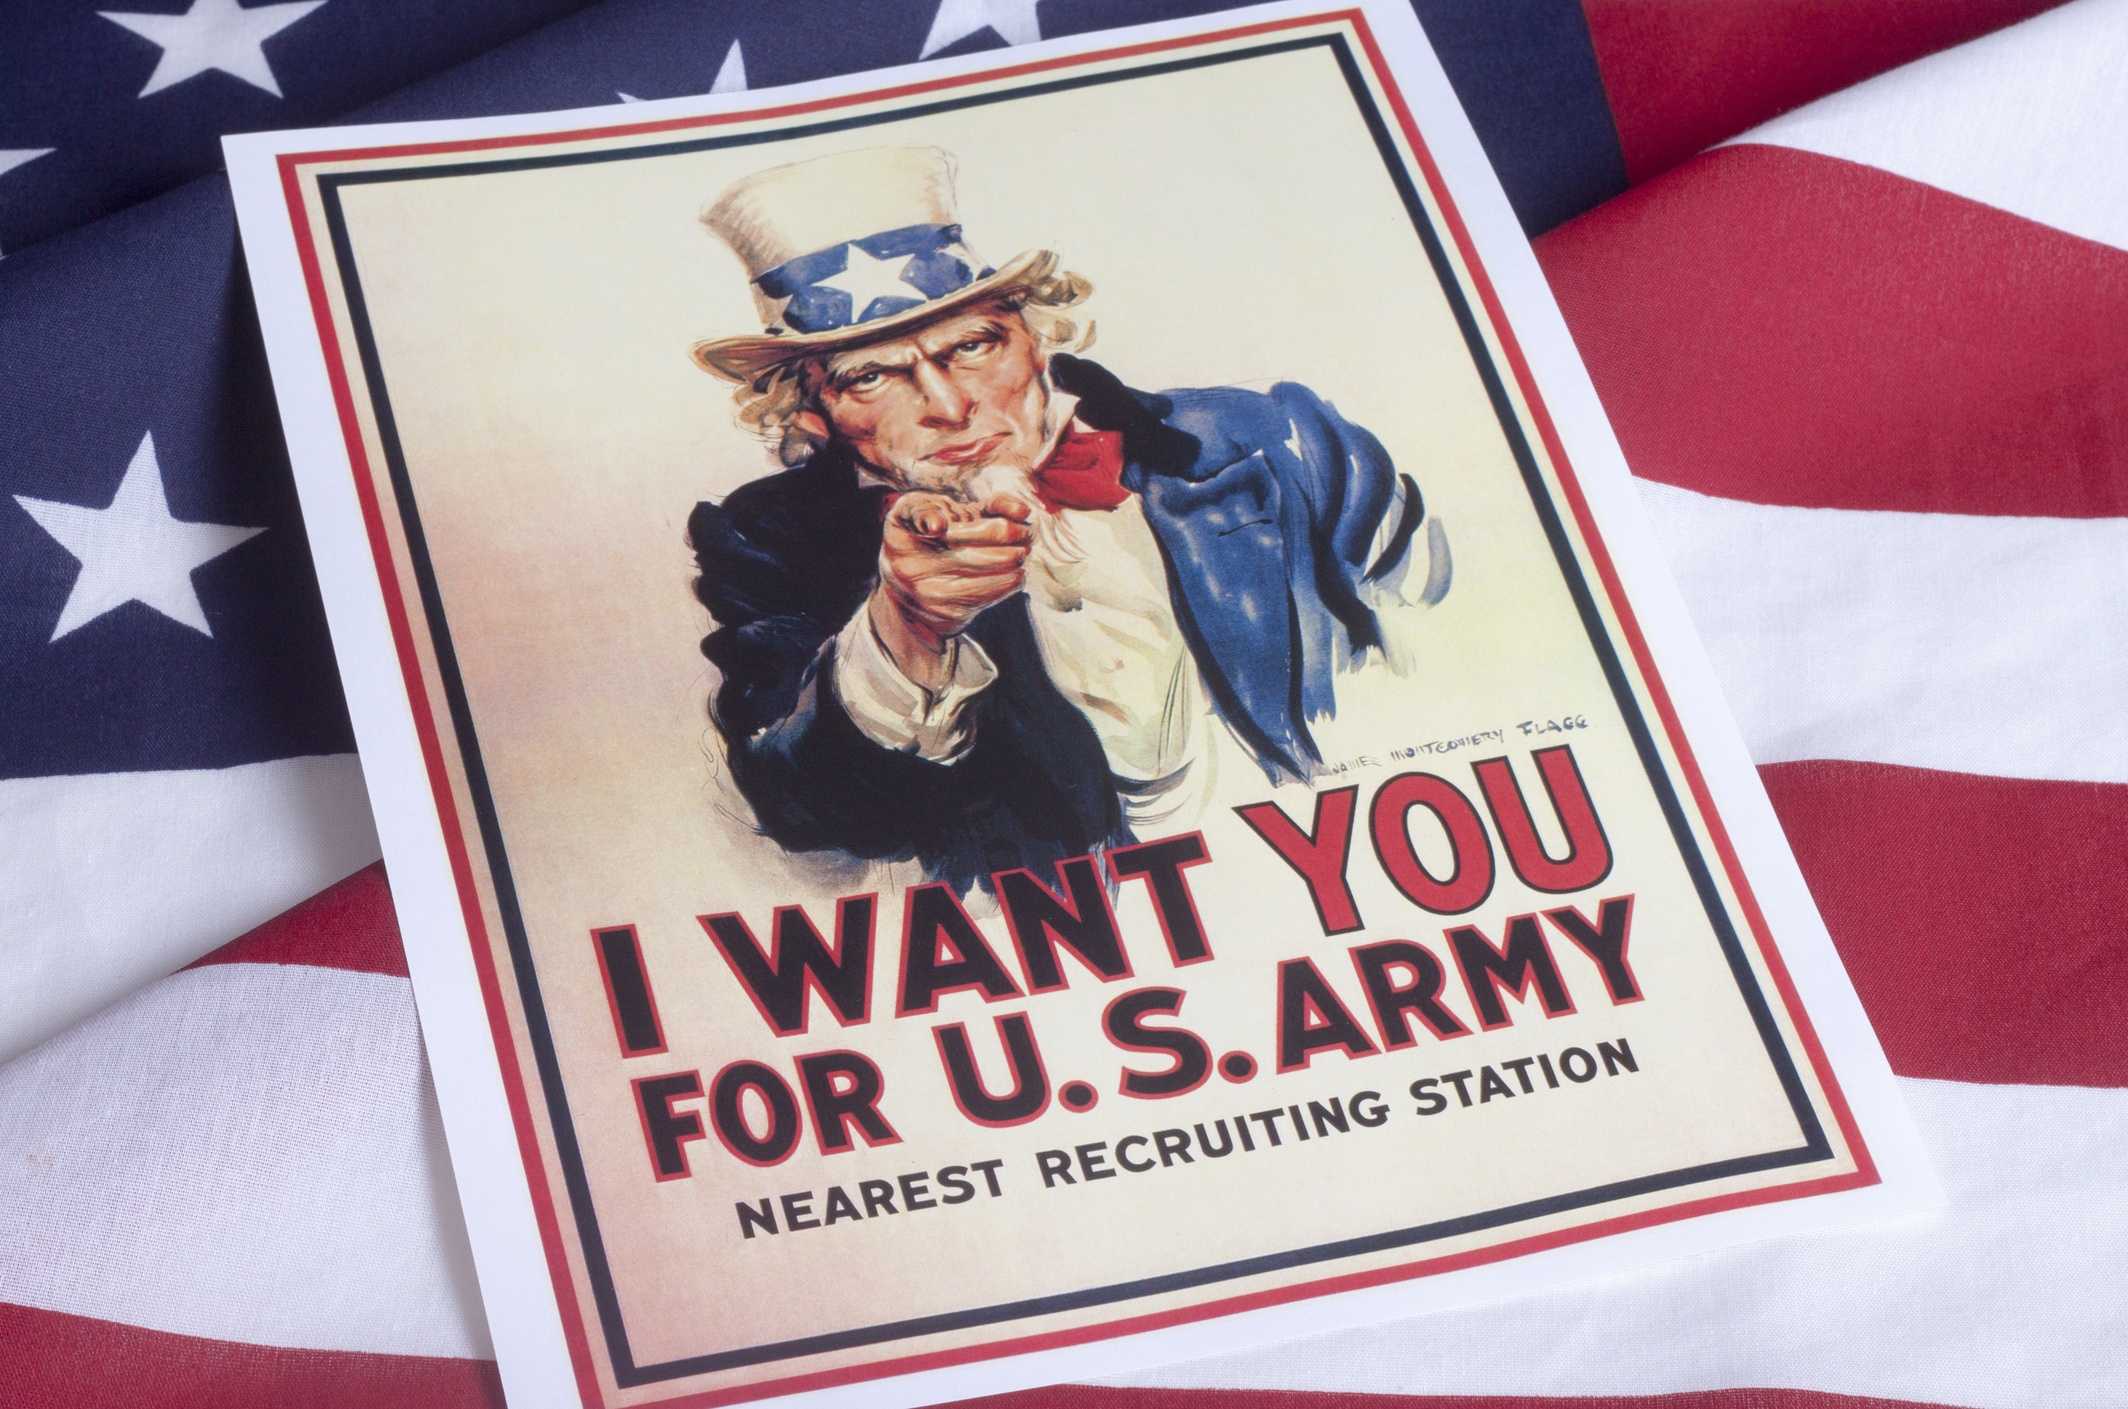 I want you - Uncle Sam